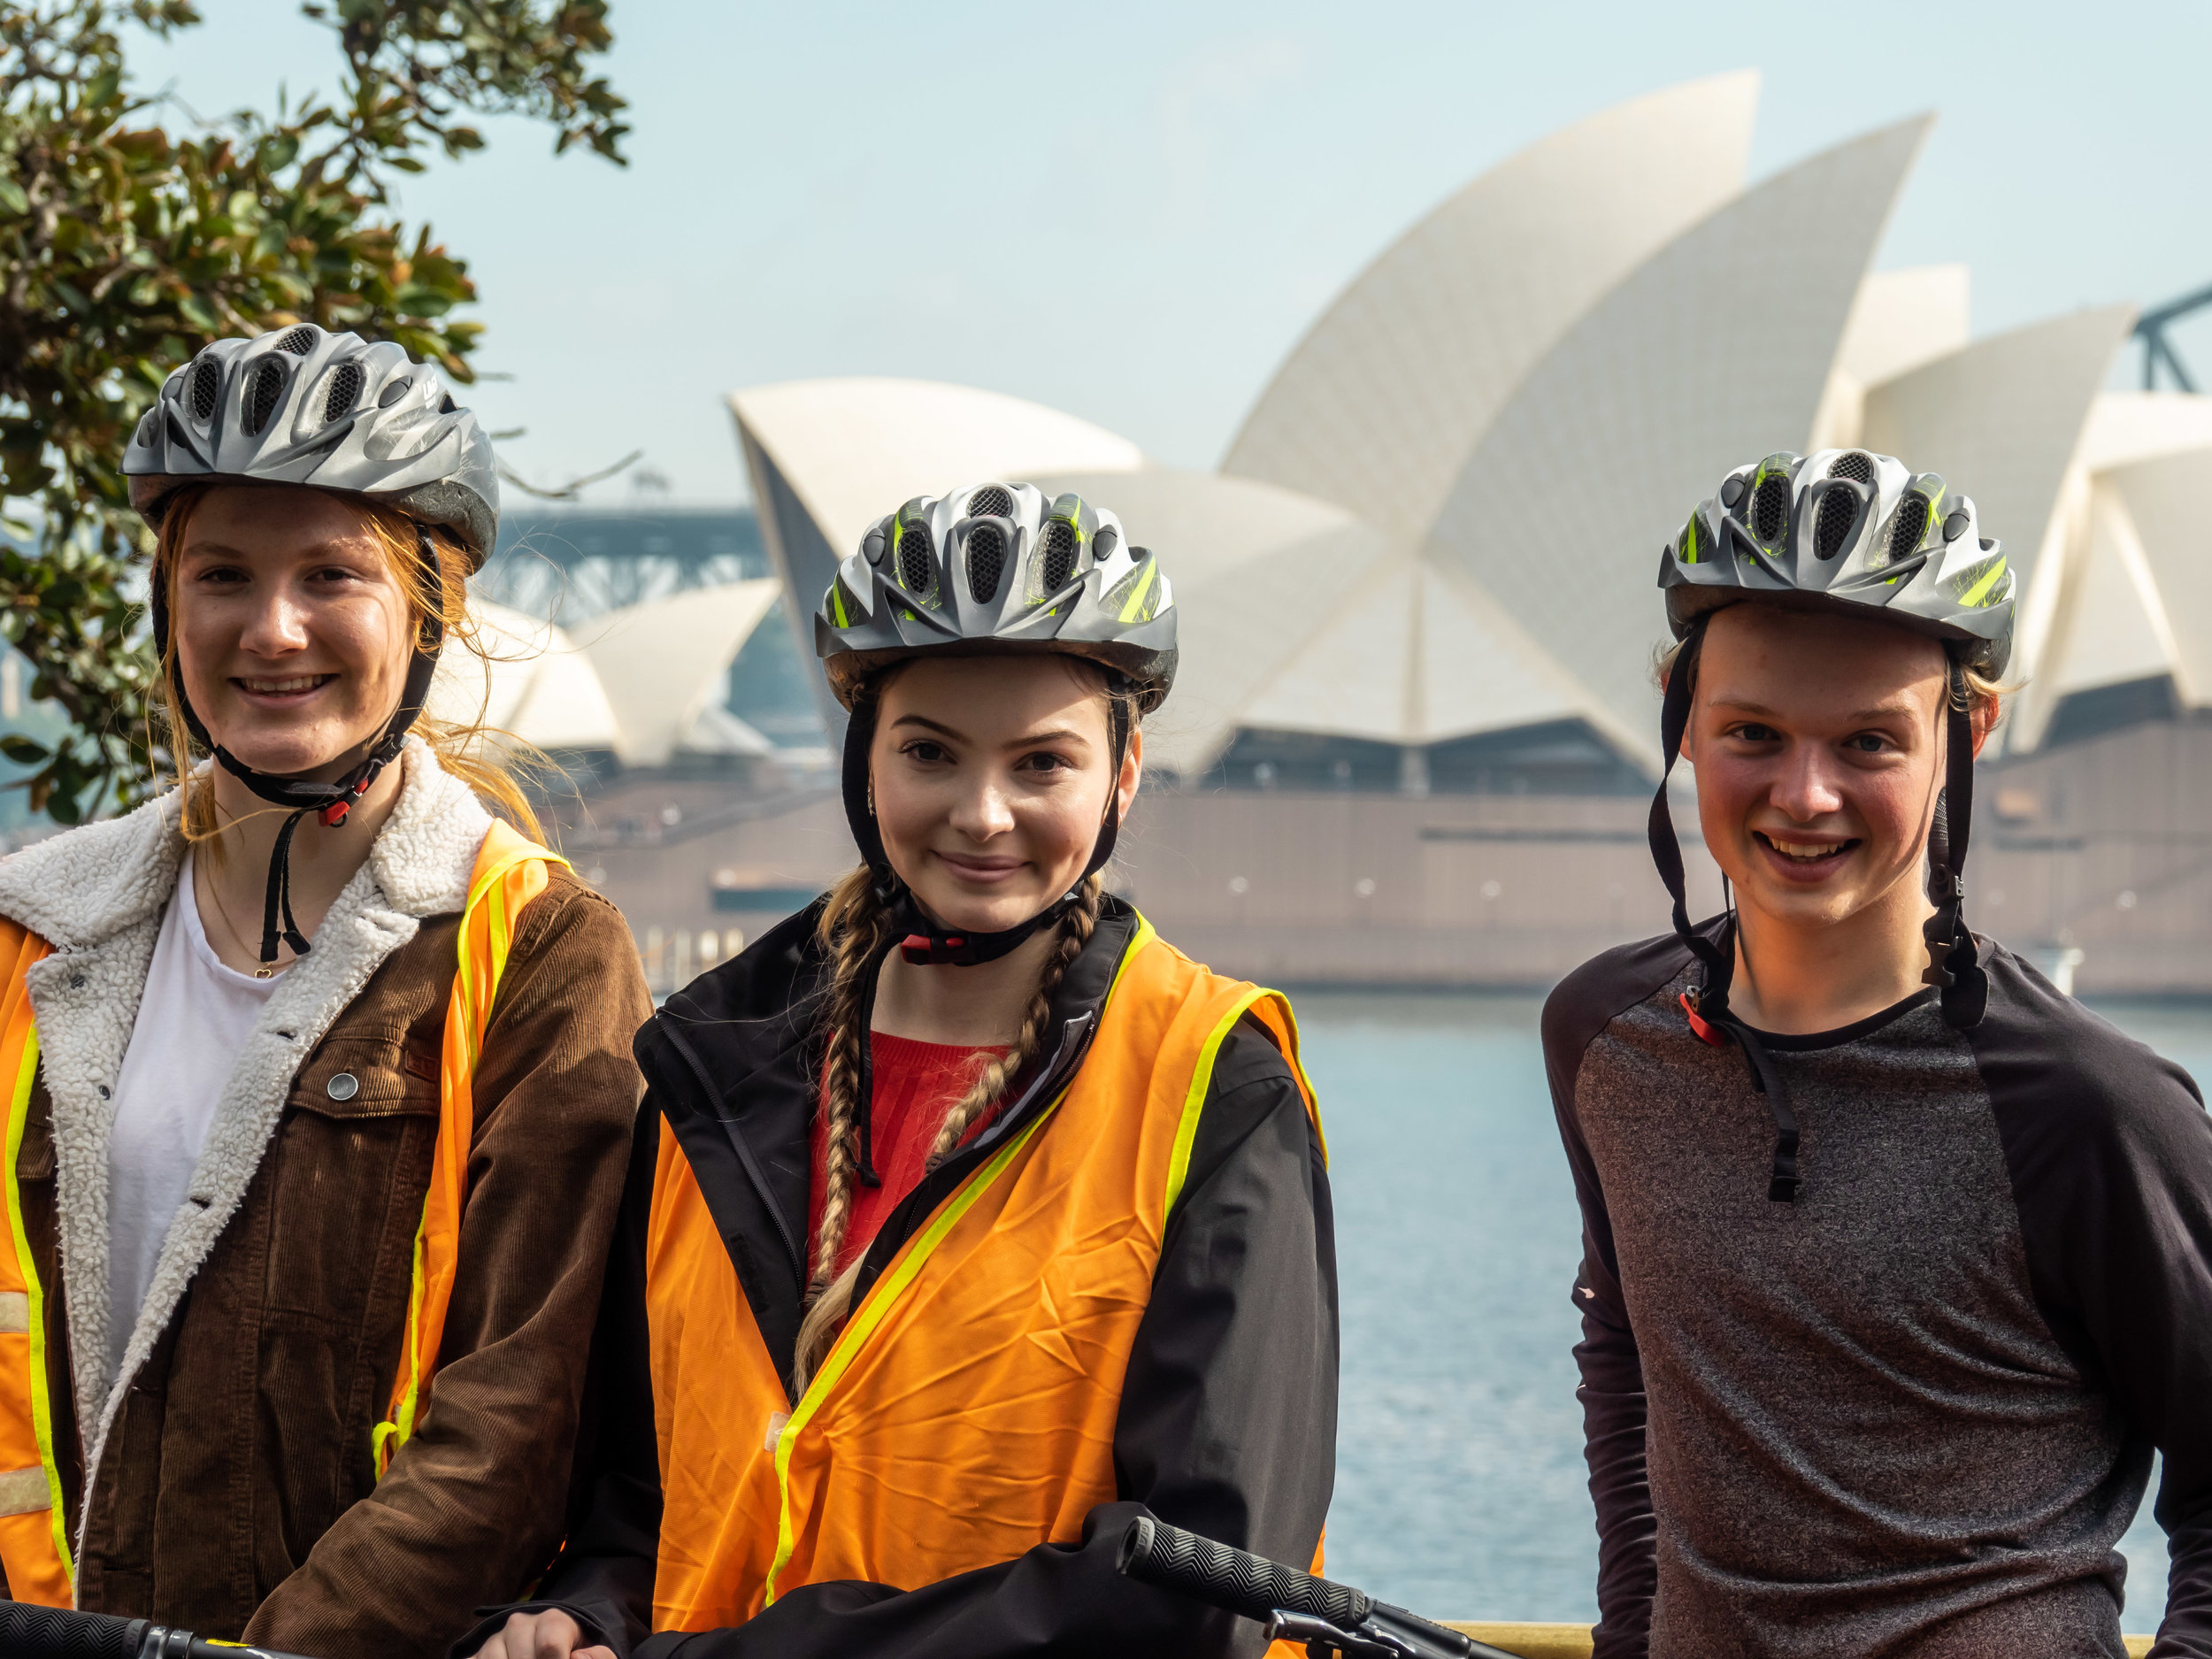 Overview - See Sydney city like never before. Youthworks City Mission takes you to a place like no other. Incorporating both education and fun, this eye opening experience is perfect for groups looking to catch a glimpse into the lives of some of Sydney's most disadvantaged.